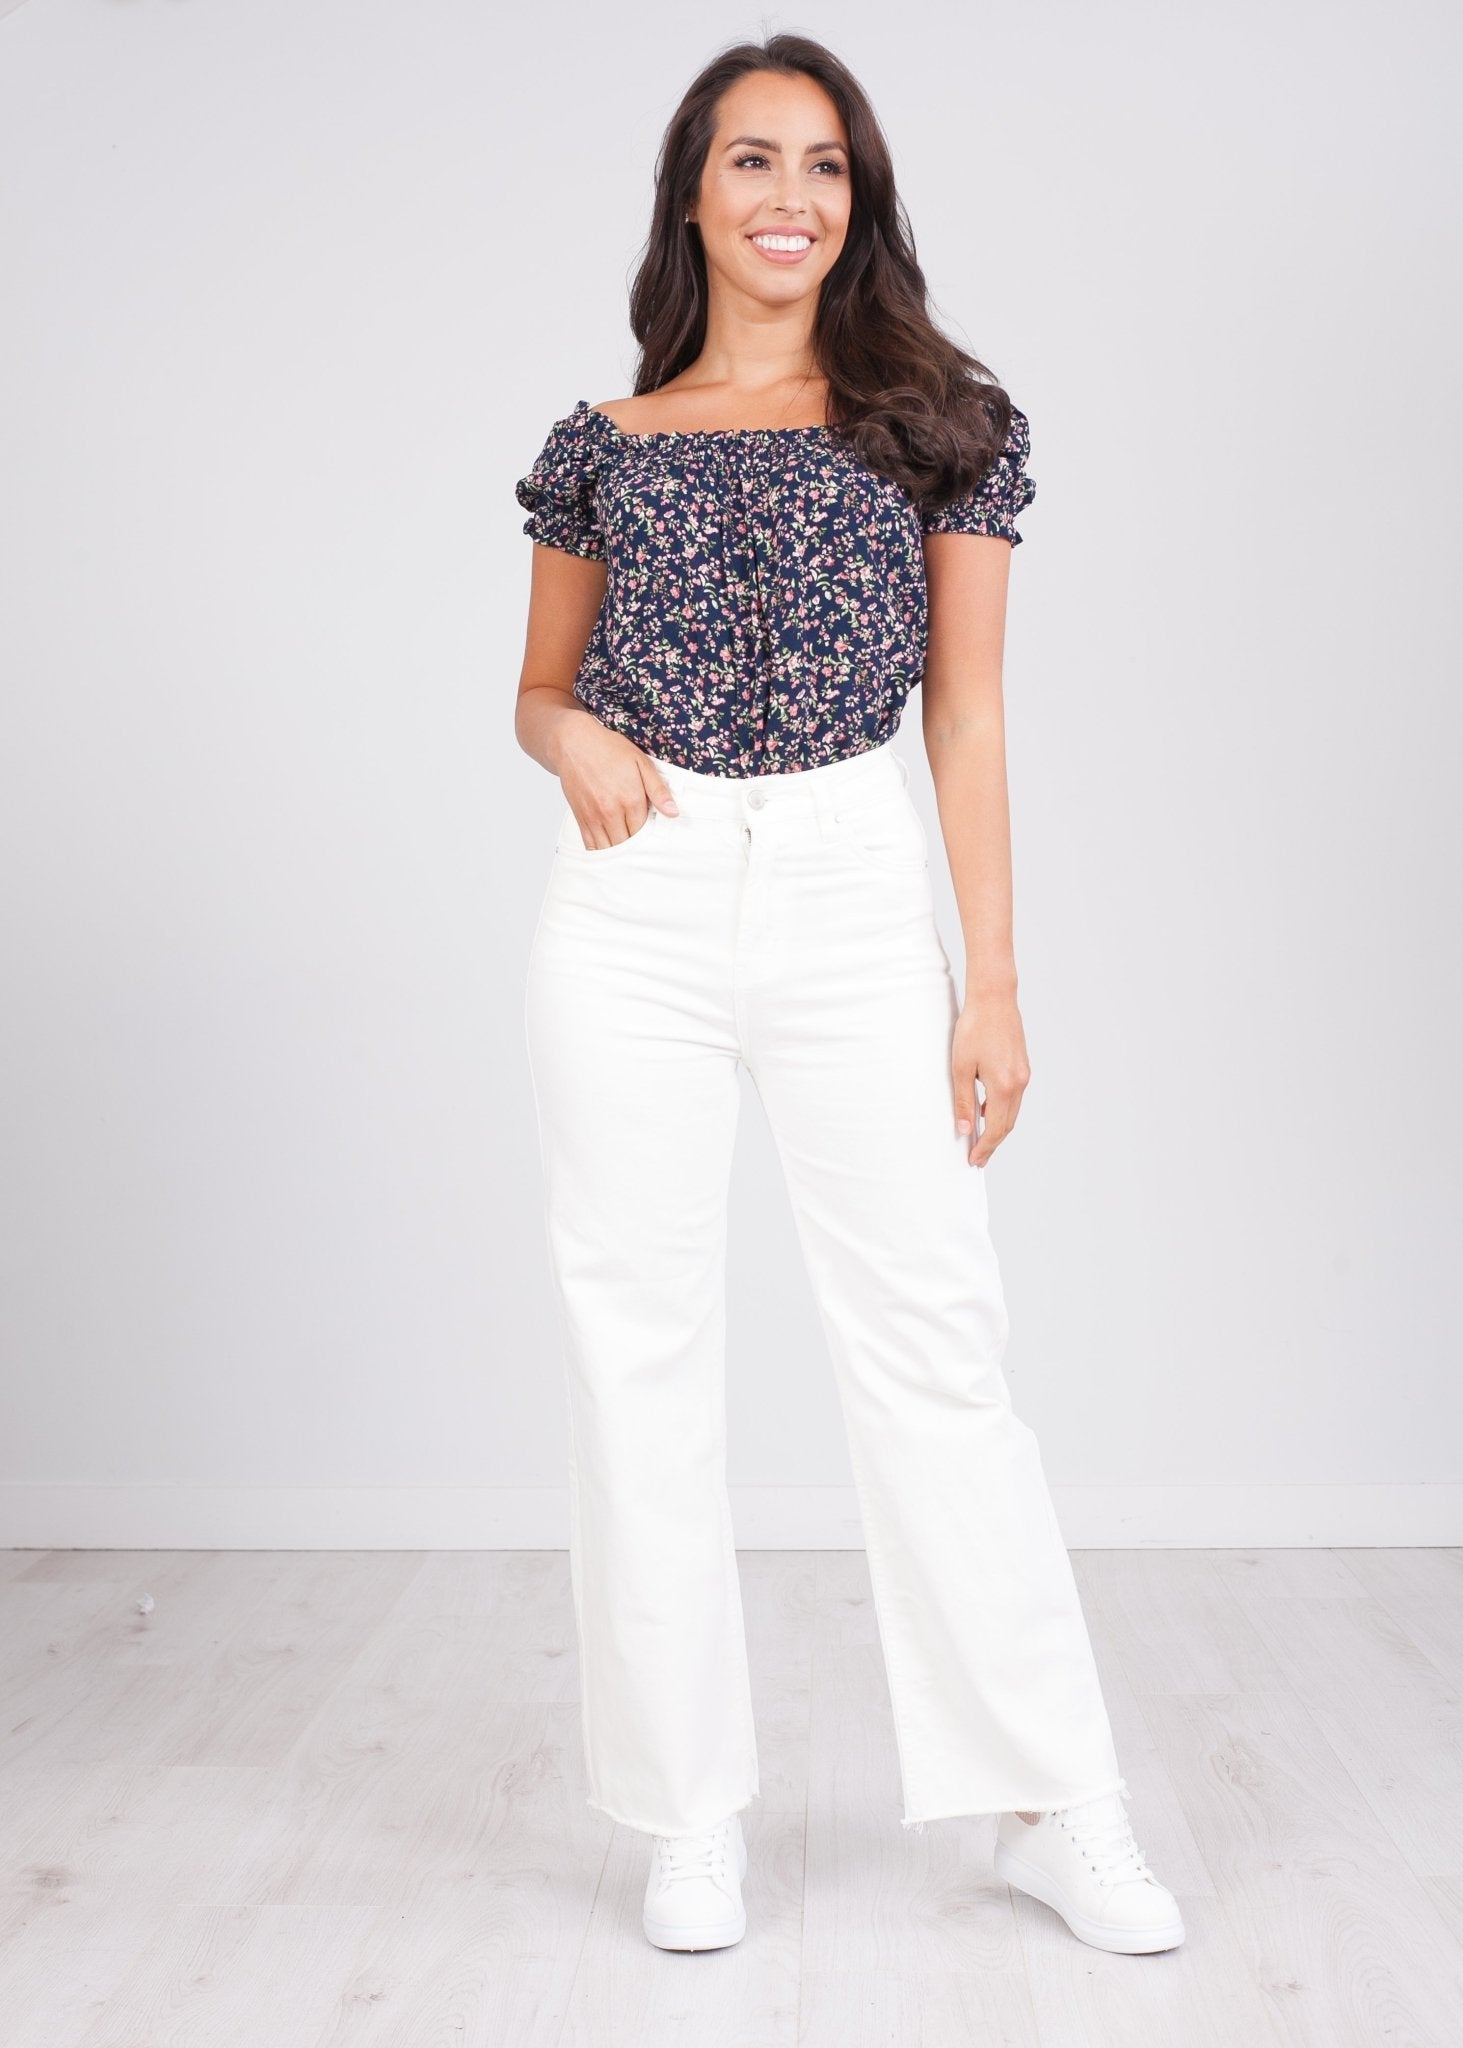 'Suzy' Cream Culotte Jeans - The Walk in Wardrobe